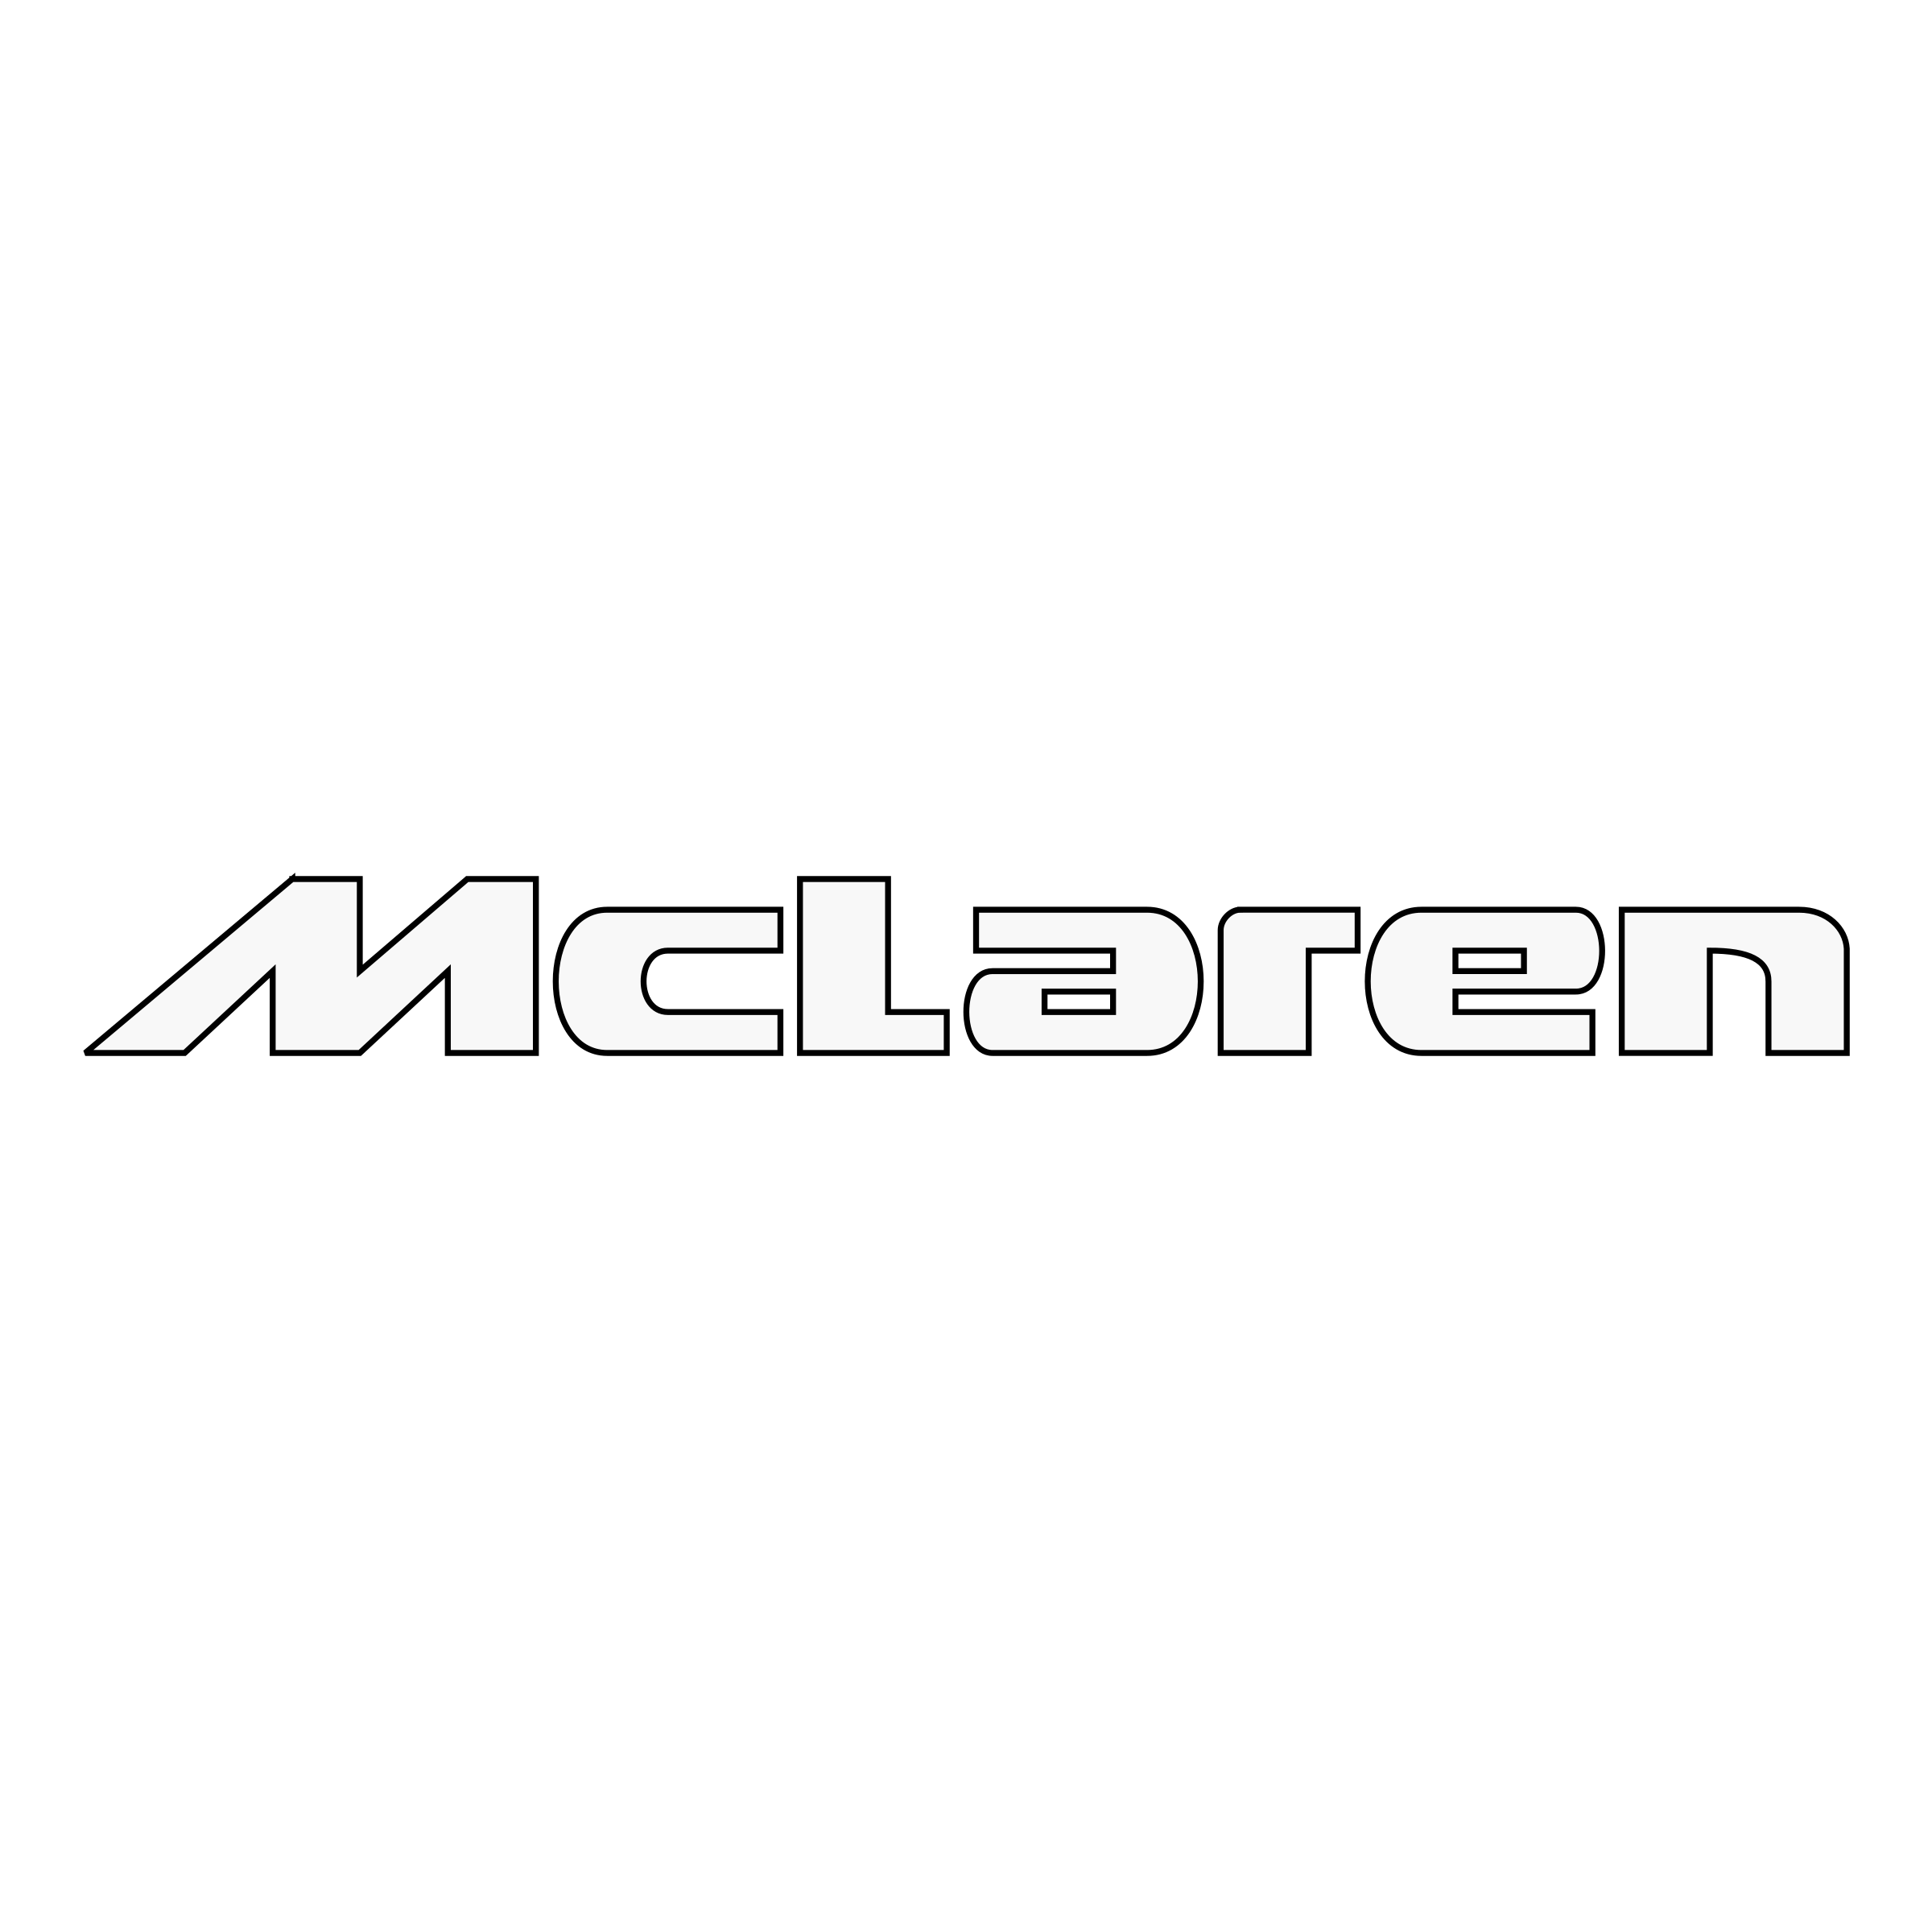 McLaren Logo - McLaren Logo PNG Transparent & SVG Vector - Freebie Supply